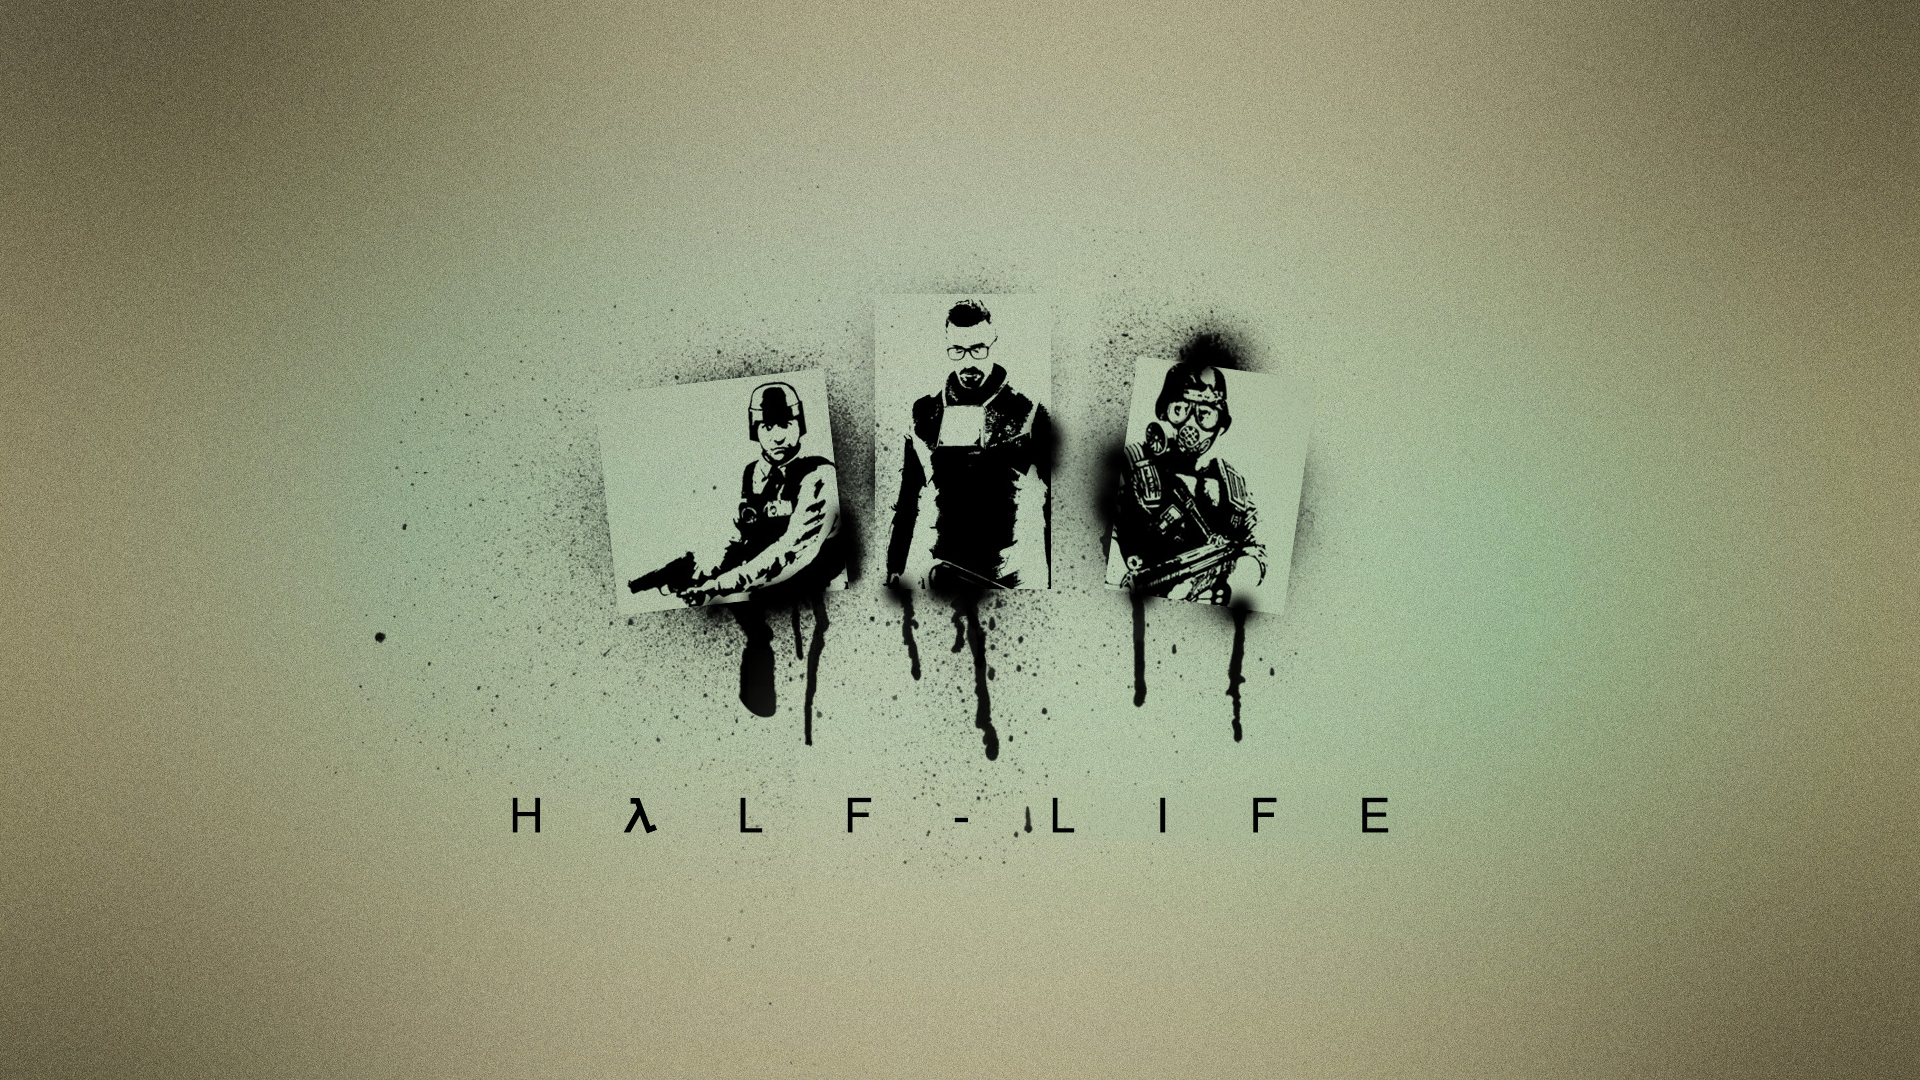 ... Half-Life Franchise Wallpaper by RealMarden